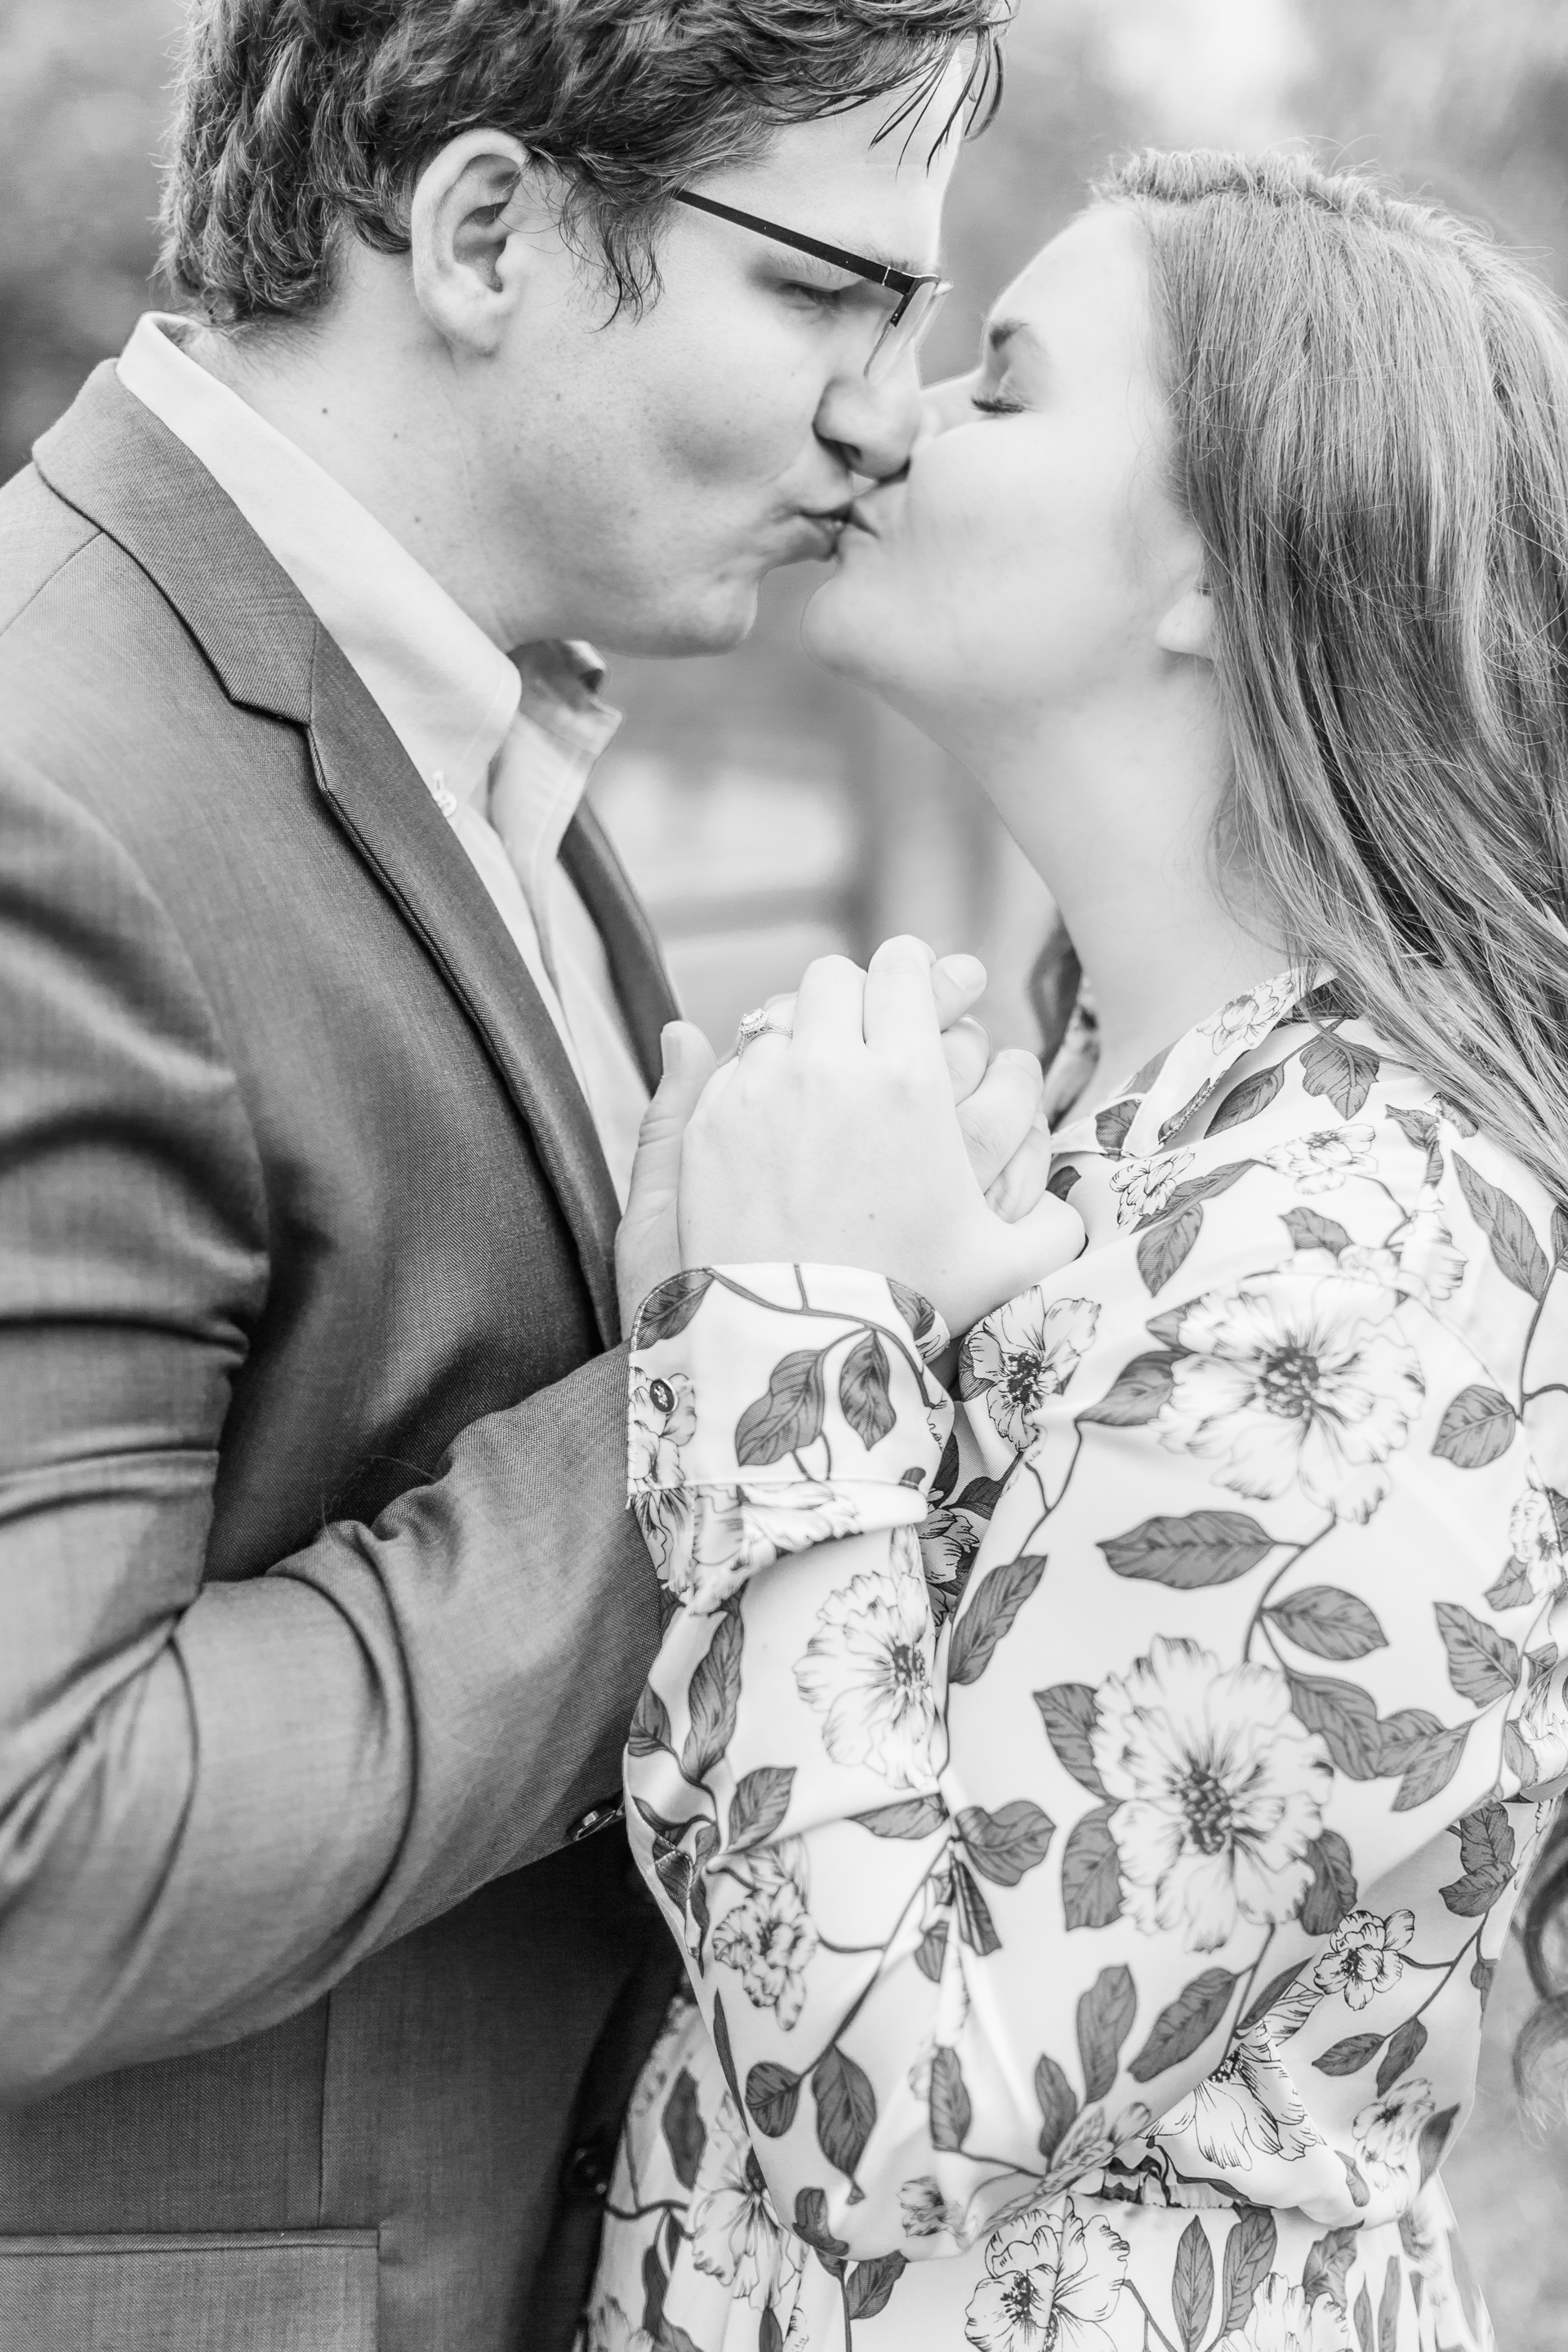 Lehigh valley Fish hatchery fall Engagement Session wedding and lifestyle photographer Lytle Photo Co (24 of 66).jpg